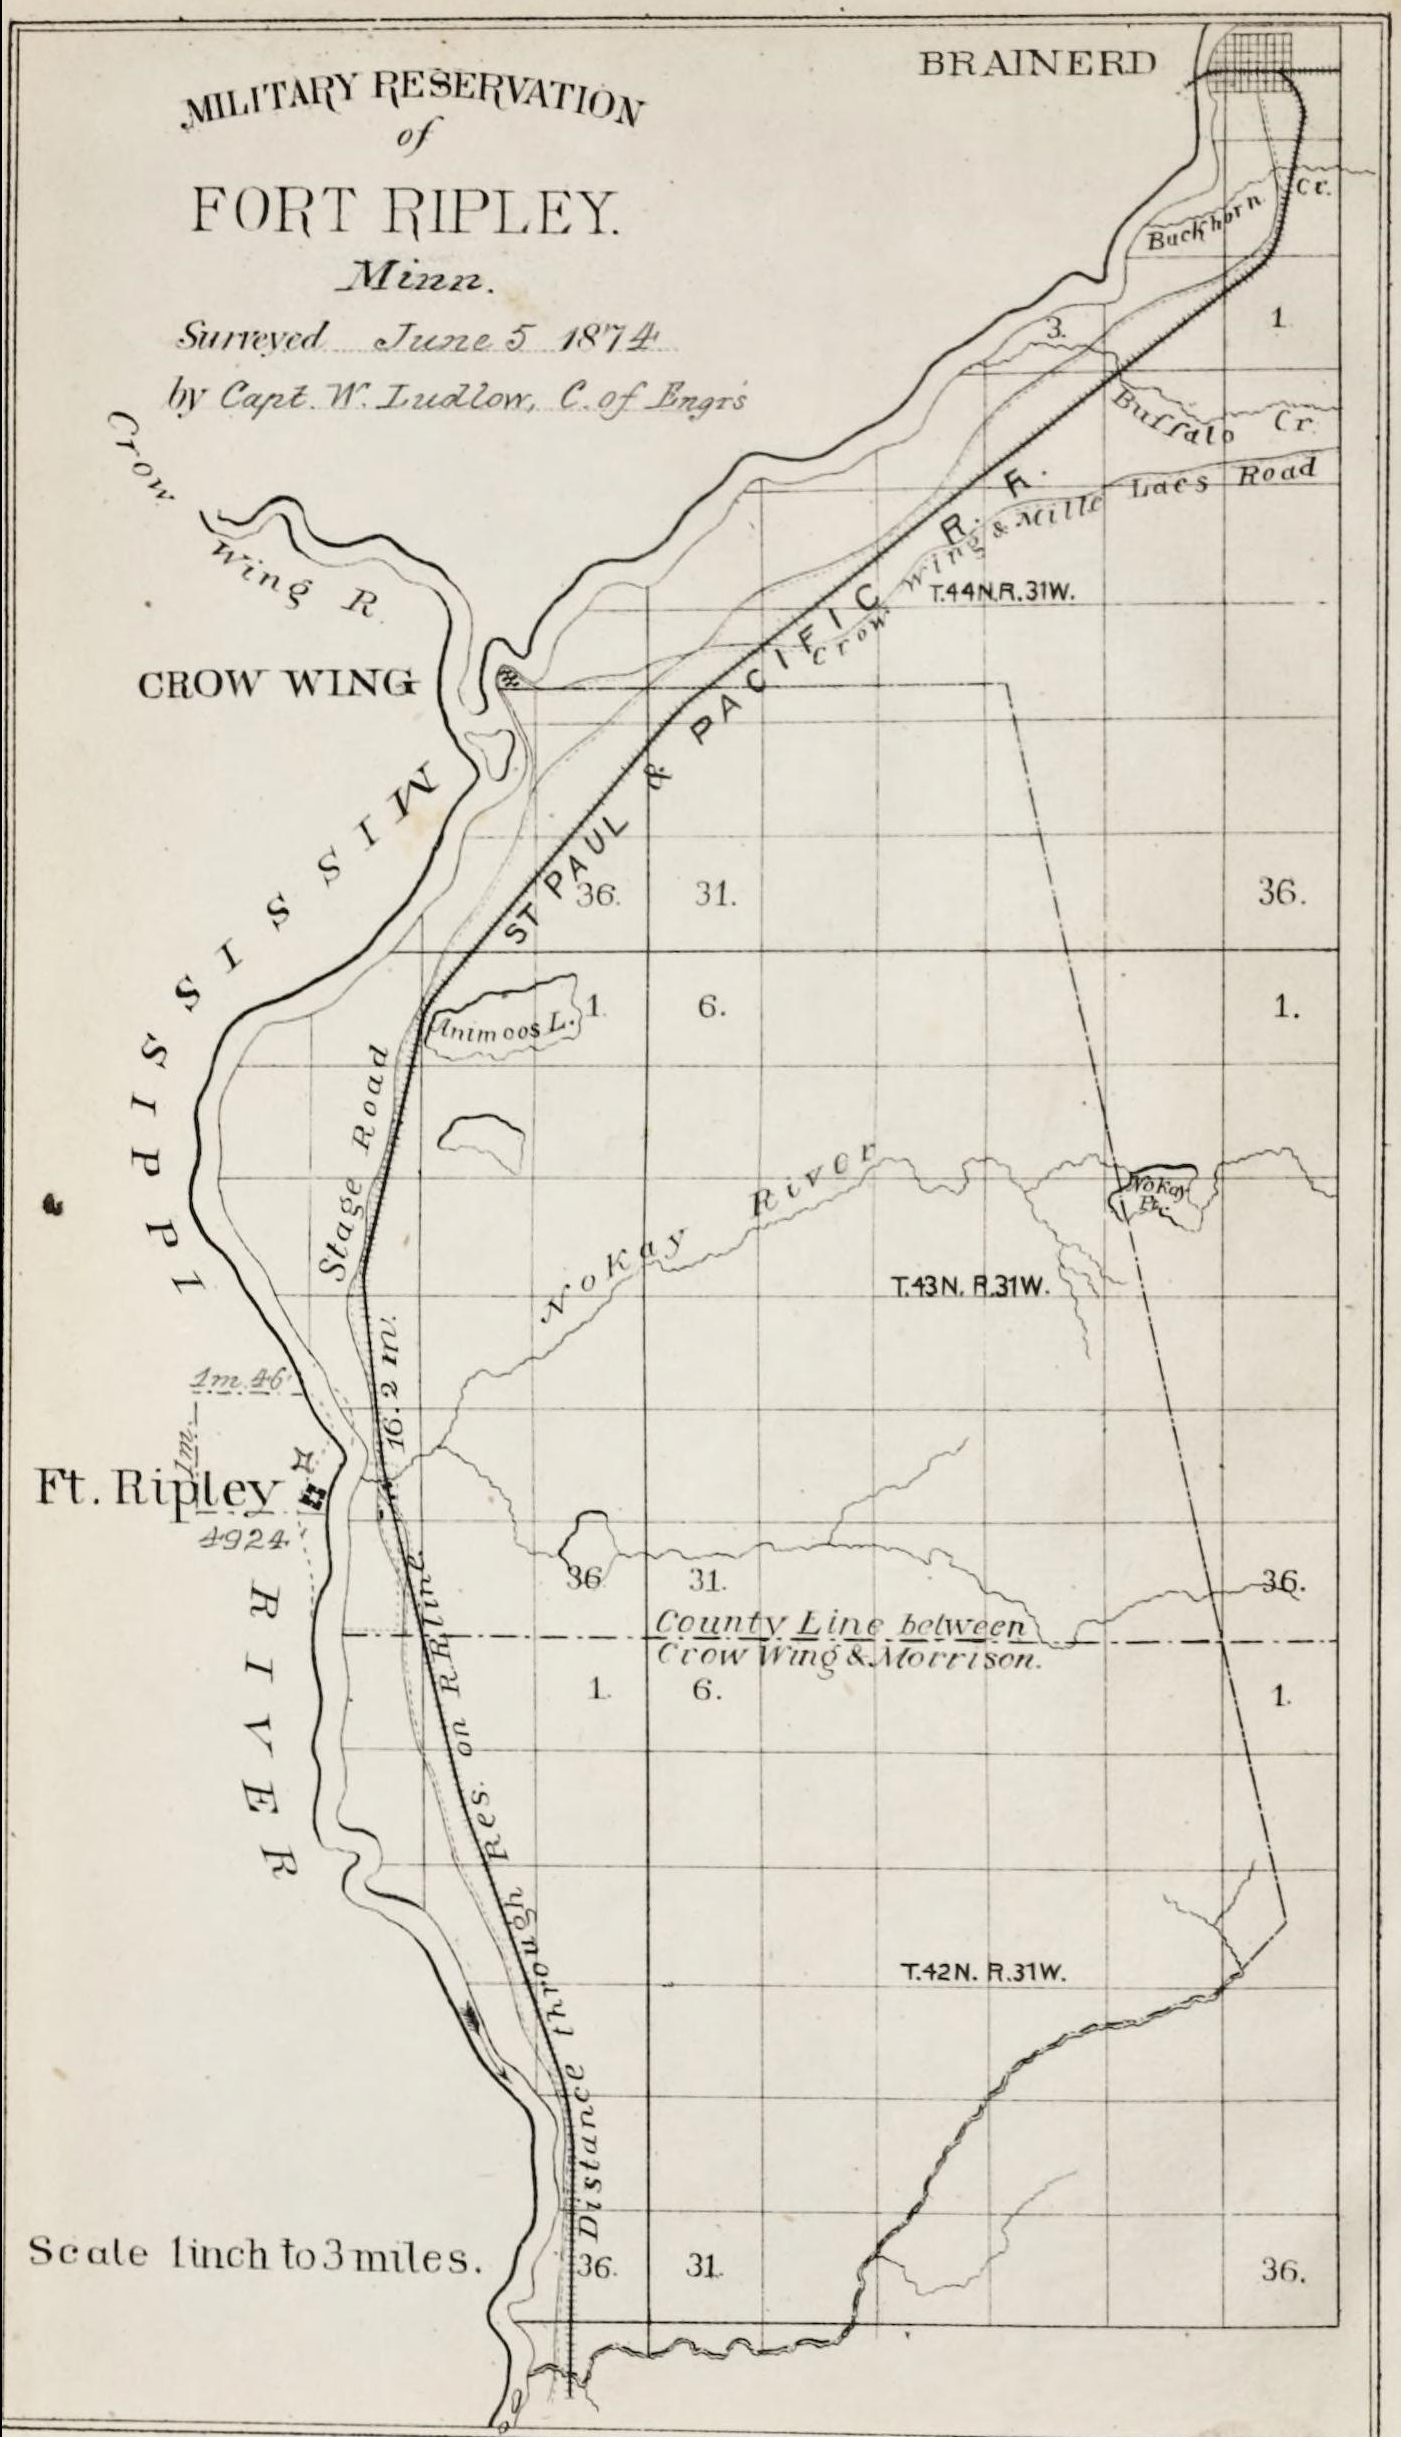 File:Military Reservation of Fort Ripley.png - Wikimedia Commons on camp san luis obispo map, camp grayling map, fort bridger map, camp parsons map, camp ashland map, camp rapid map, camp coniston map, camp butner map,